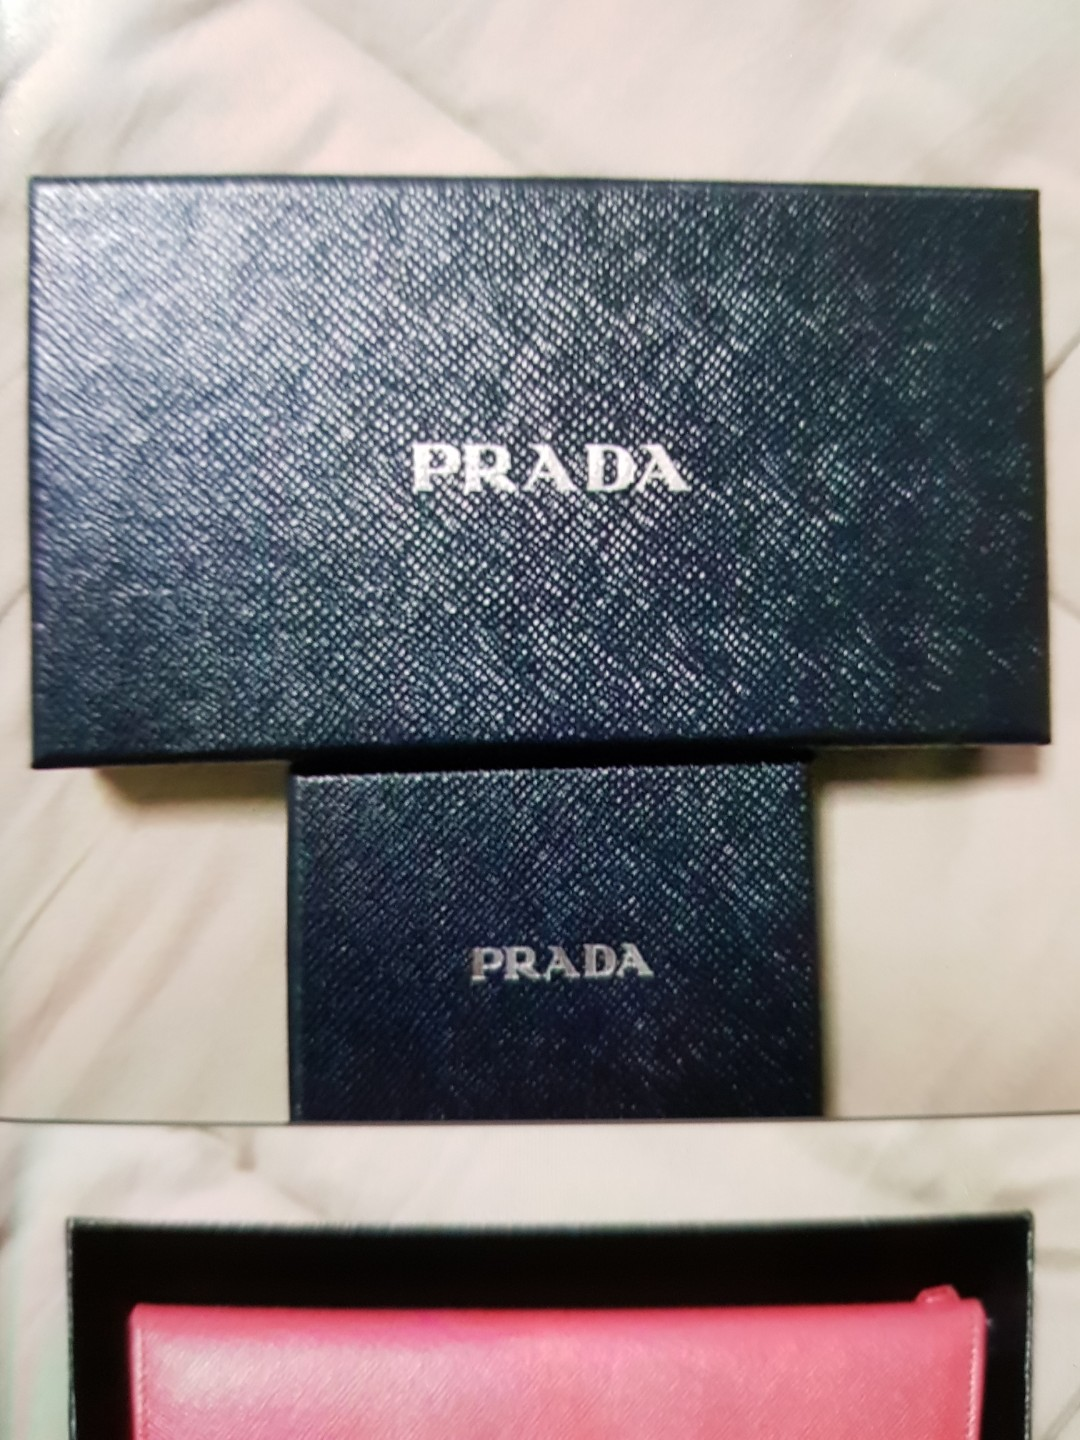 85f600429ffceb BRAND NEW PRADA RED, Luxury, Bags & Wallets, Wallets on Carousell